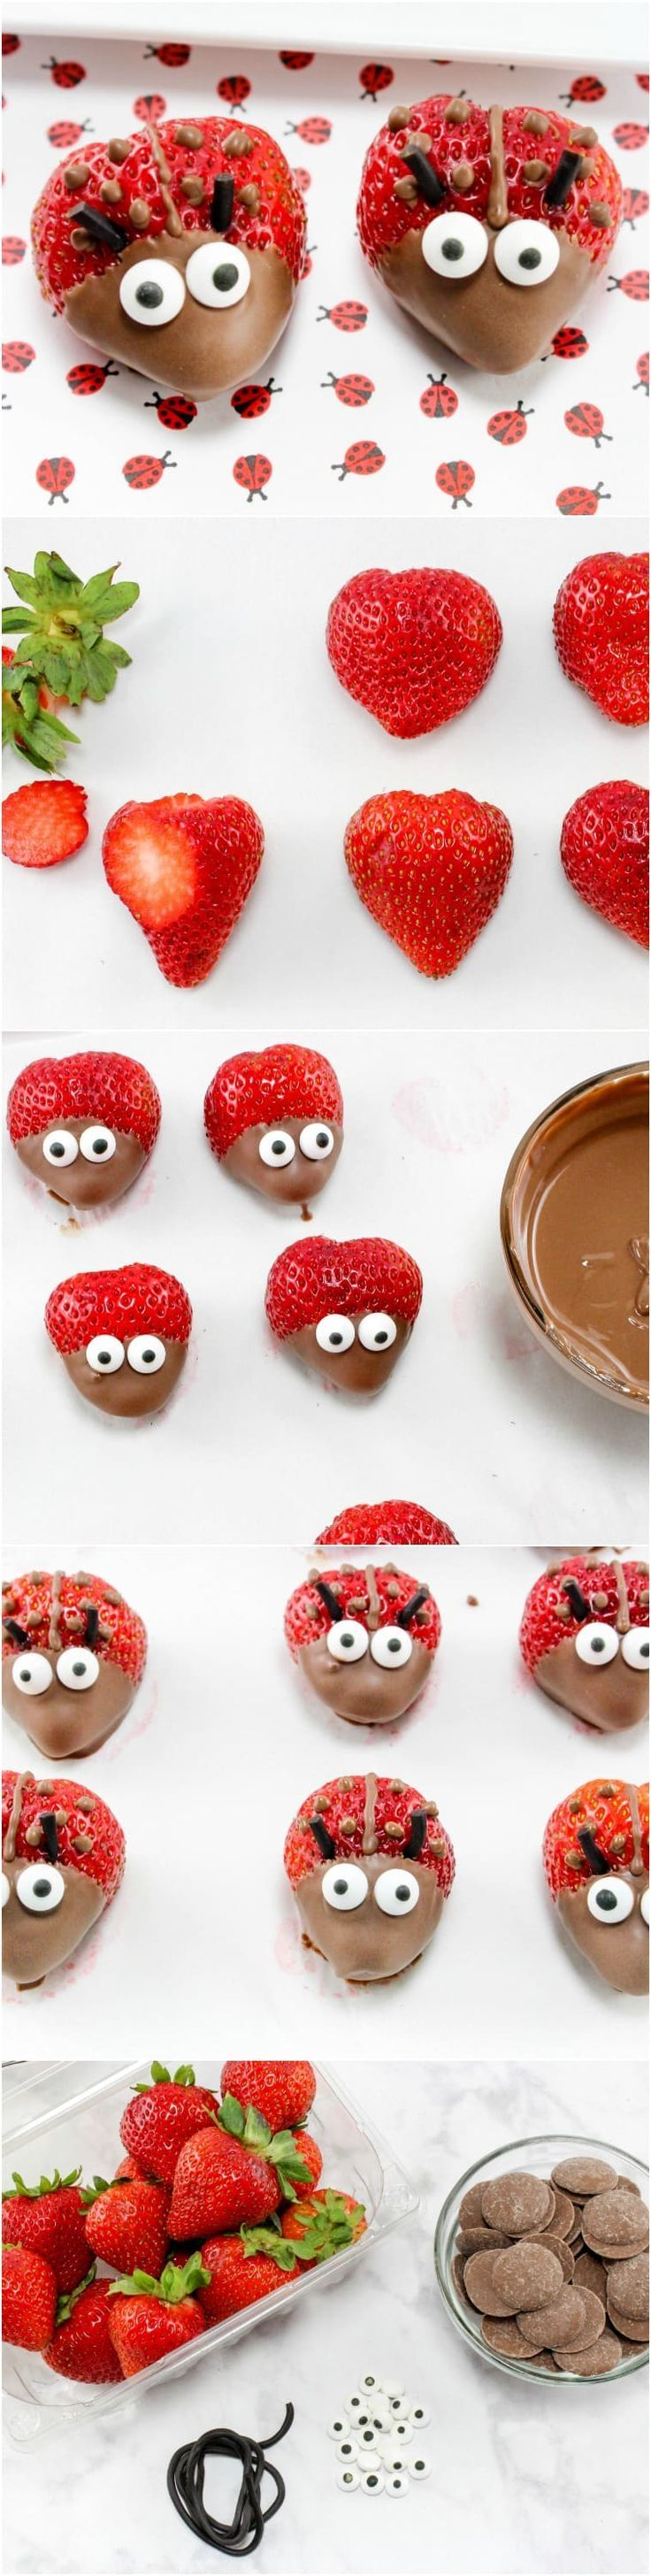 Chocolate Covered Strawberry Ladybugs - The perfect healthy treat option for a summer party, Valentine's Day or just for fun